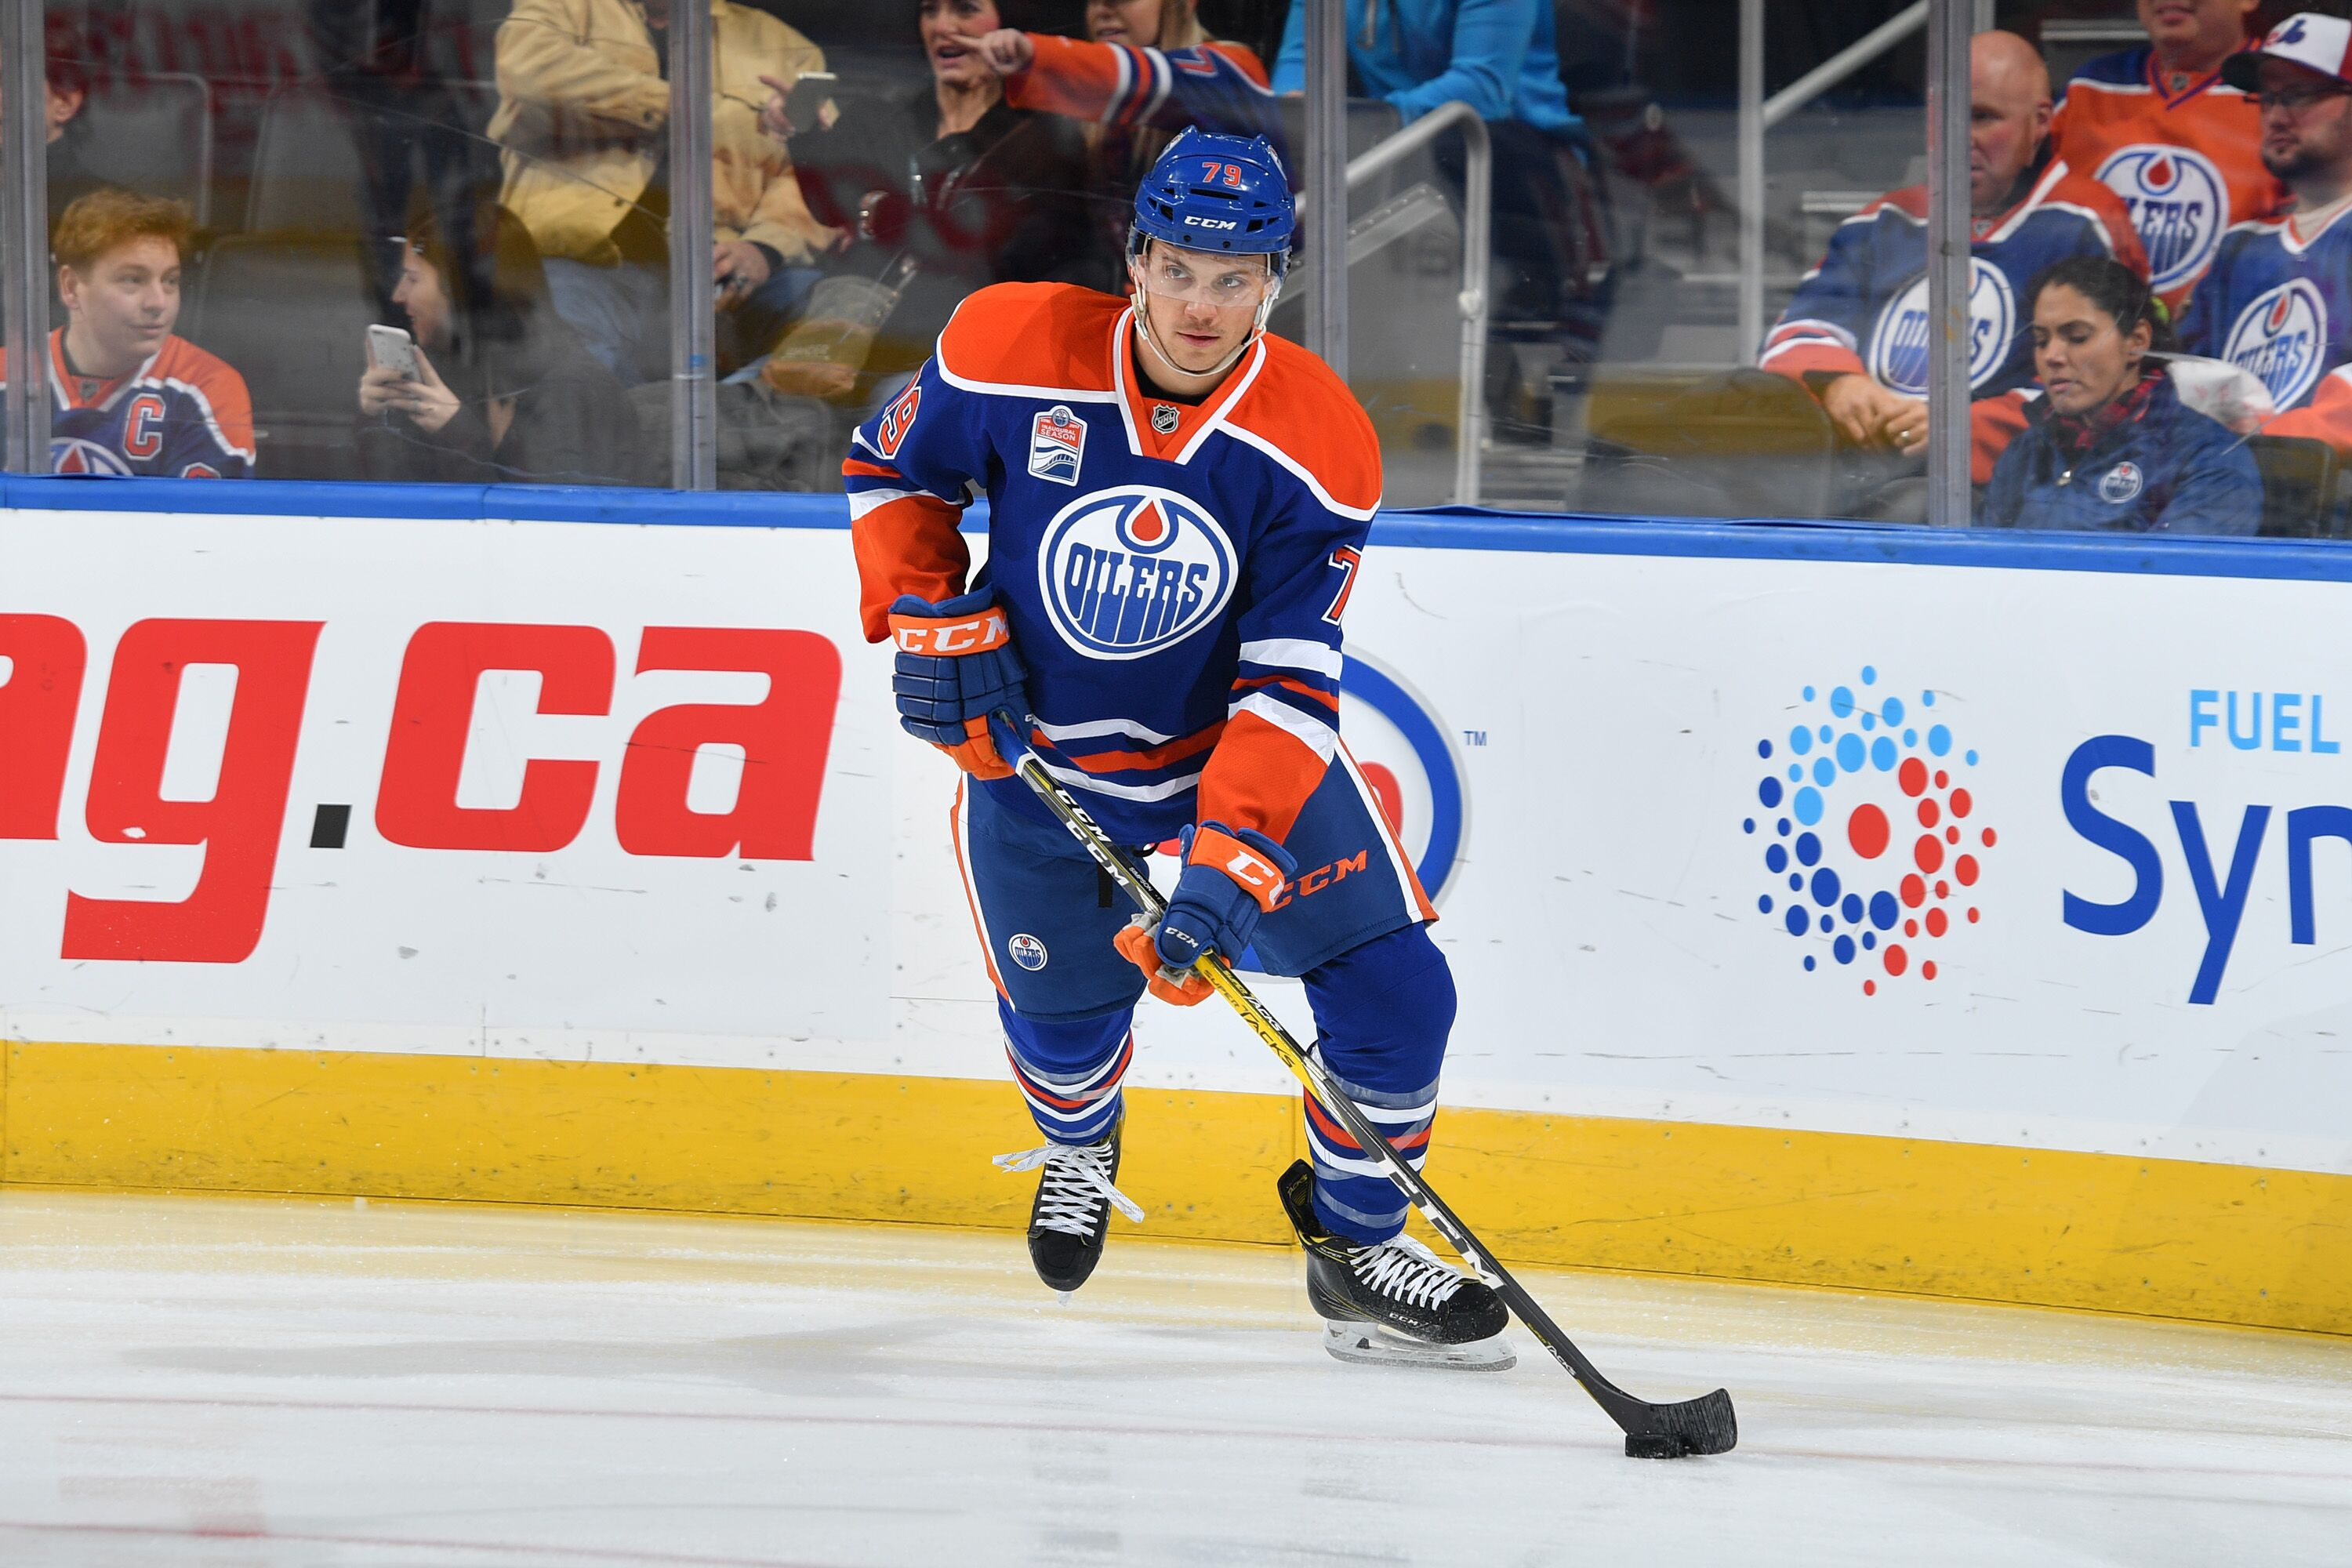 Edmonton Oilers: Can Dillon Simpson Crack NHL Roster?